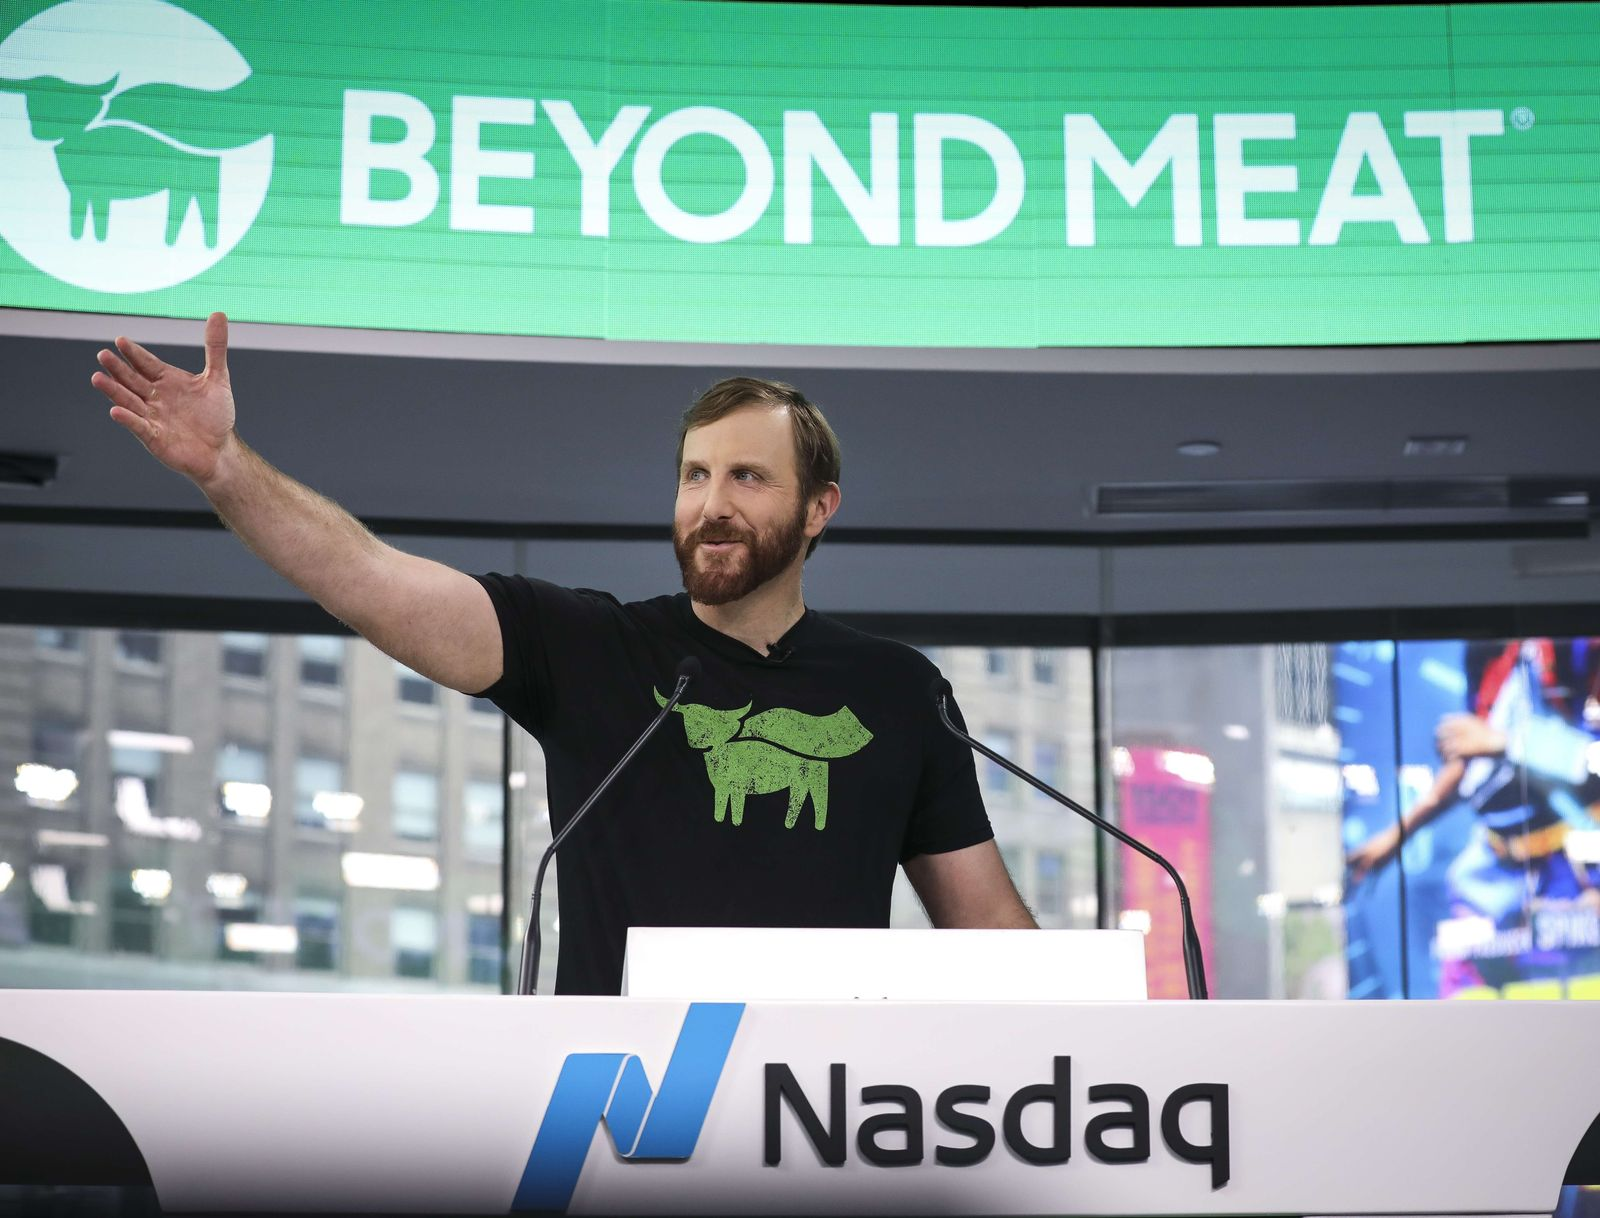 US-MEATLESS-BURGER-COMPANY-BEYOND-MEAT-GOES-PUBLIC-ON-NASDAQ-EXC